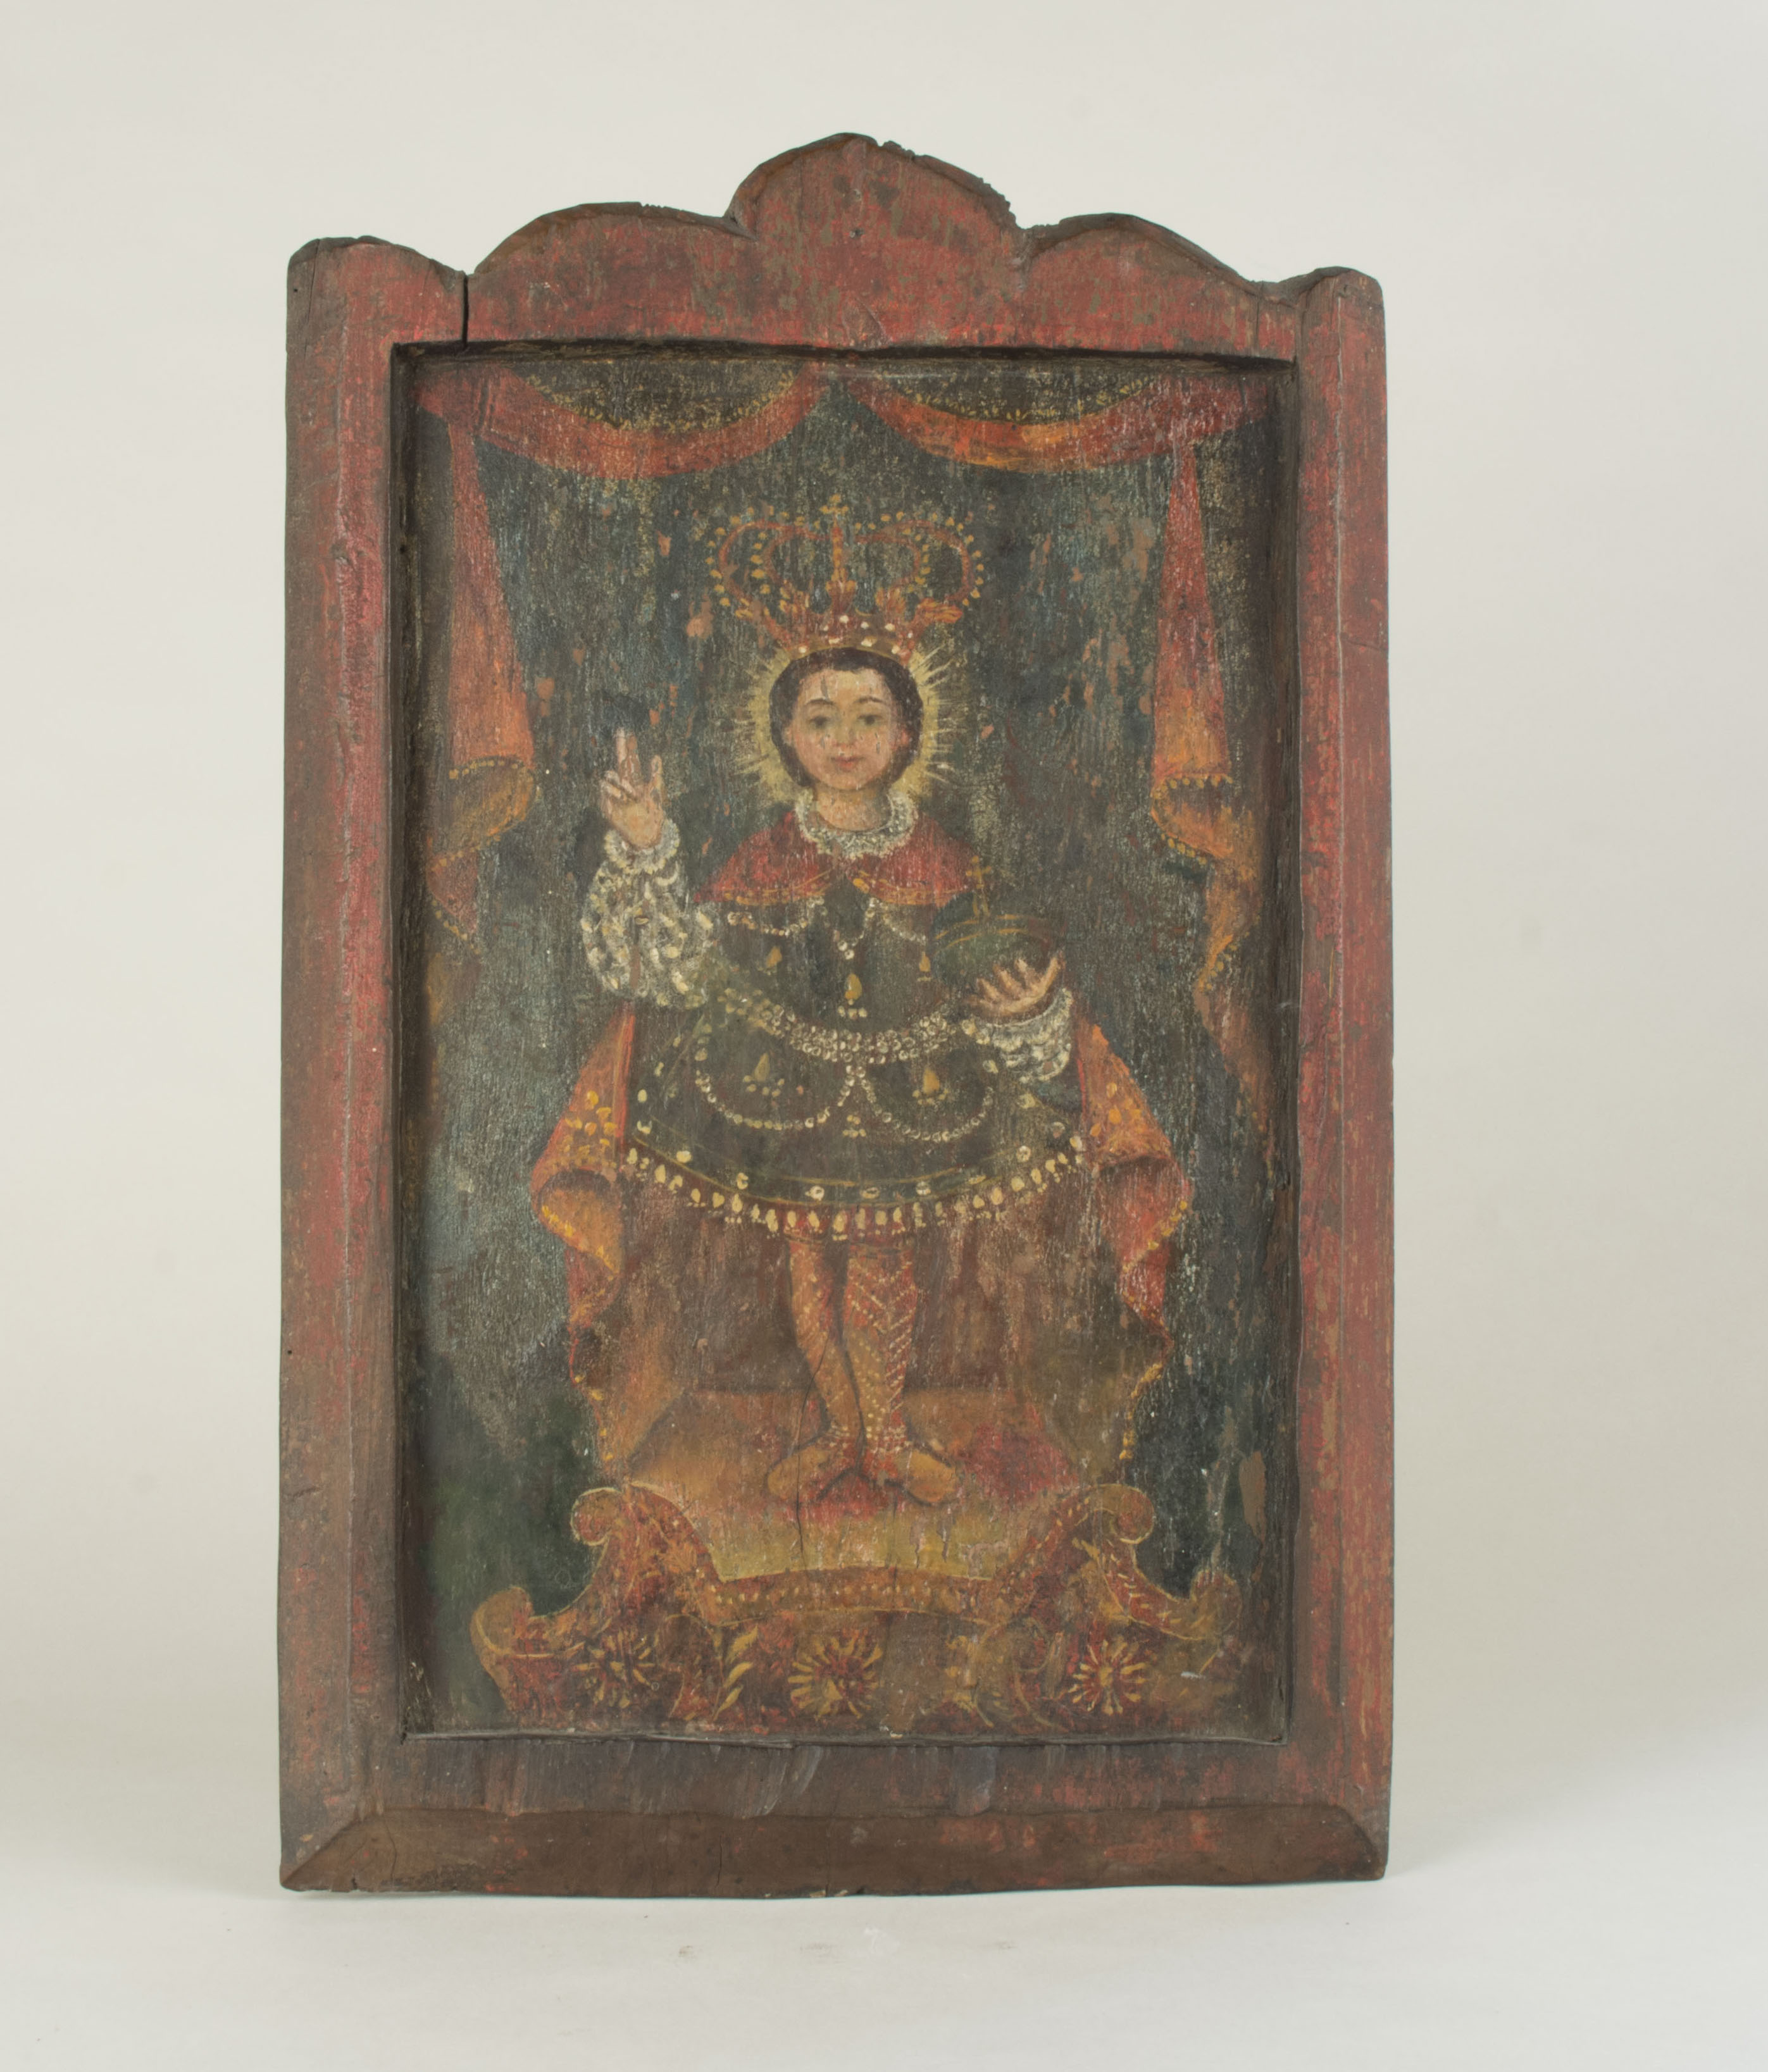 Santo Nino painting owned by Claudia Jamilla- front Possibly from the nineteenth century. This was given as a wedding gift in 1994 from Claudia's maternal uncle.. Claudia added that this was from the Visayas but was unsure whether it was from Cebu or Bohol. Santo Niño Basilica Cebu. Claudia noted that this reminds her of a significant incident that occurred on her wedding day. Her cousin (the daughter of the uncle who gave her this gift) was kidnapped on the day of Claudia's wedding, held for ransom, and released after wedding.   Any views, findings, conclusions, or recommendations expressed in this story do not necessarily represent those of the National Endowment for the Humanities. [Copyright] Field Museum of Natural History - CC BY-NC